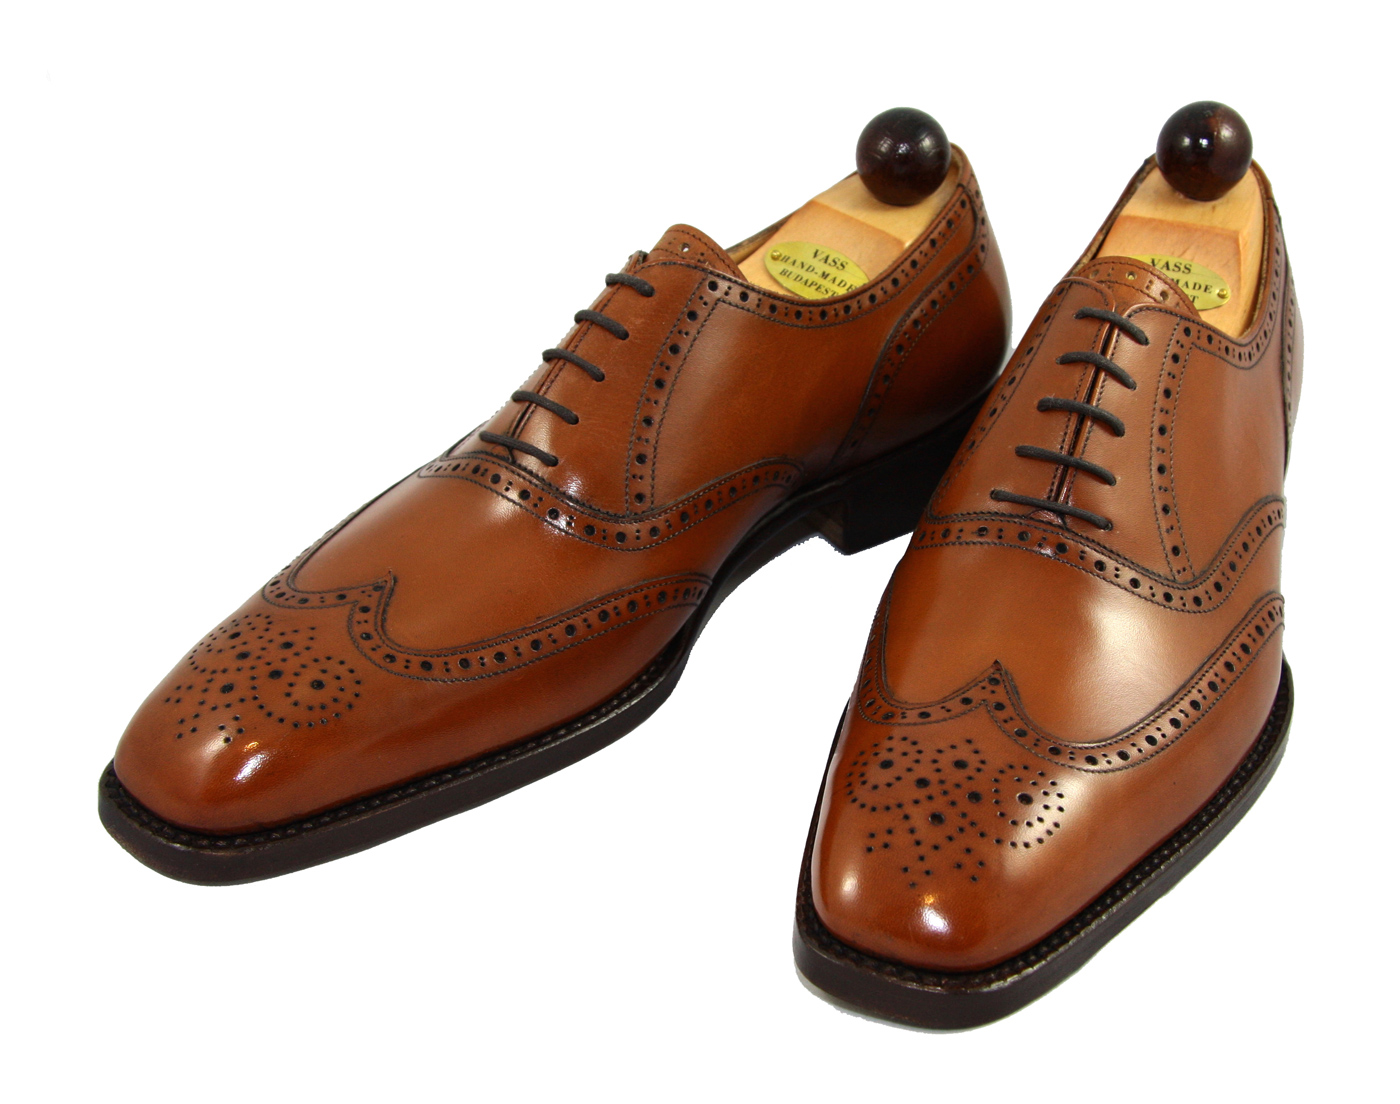 Vass Shoes 1075 Size 44 Cognac Calf